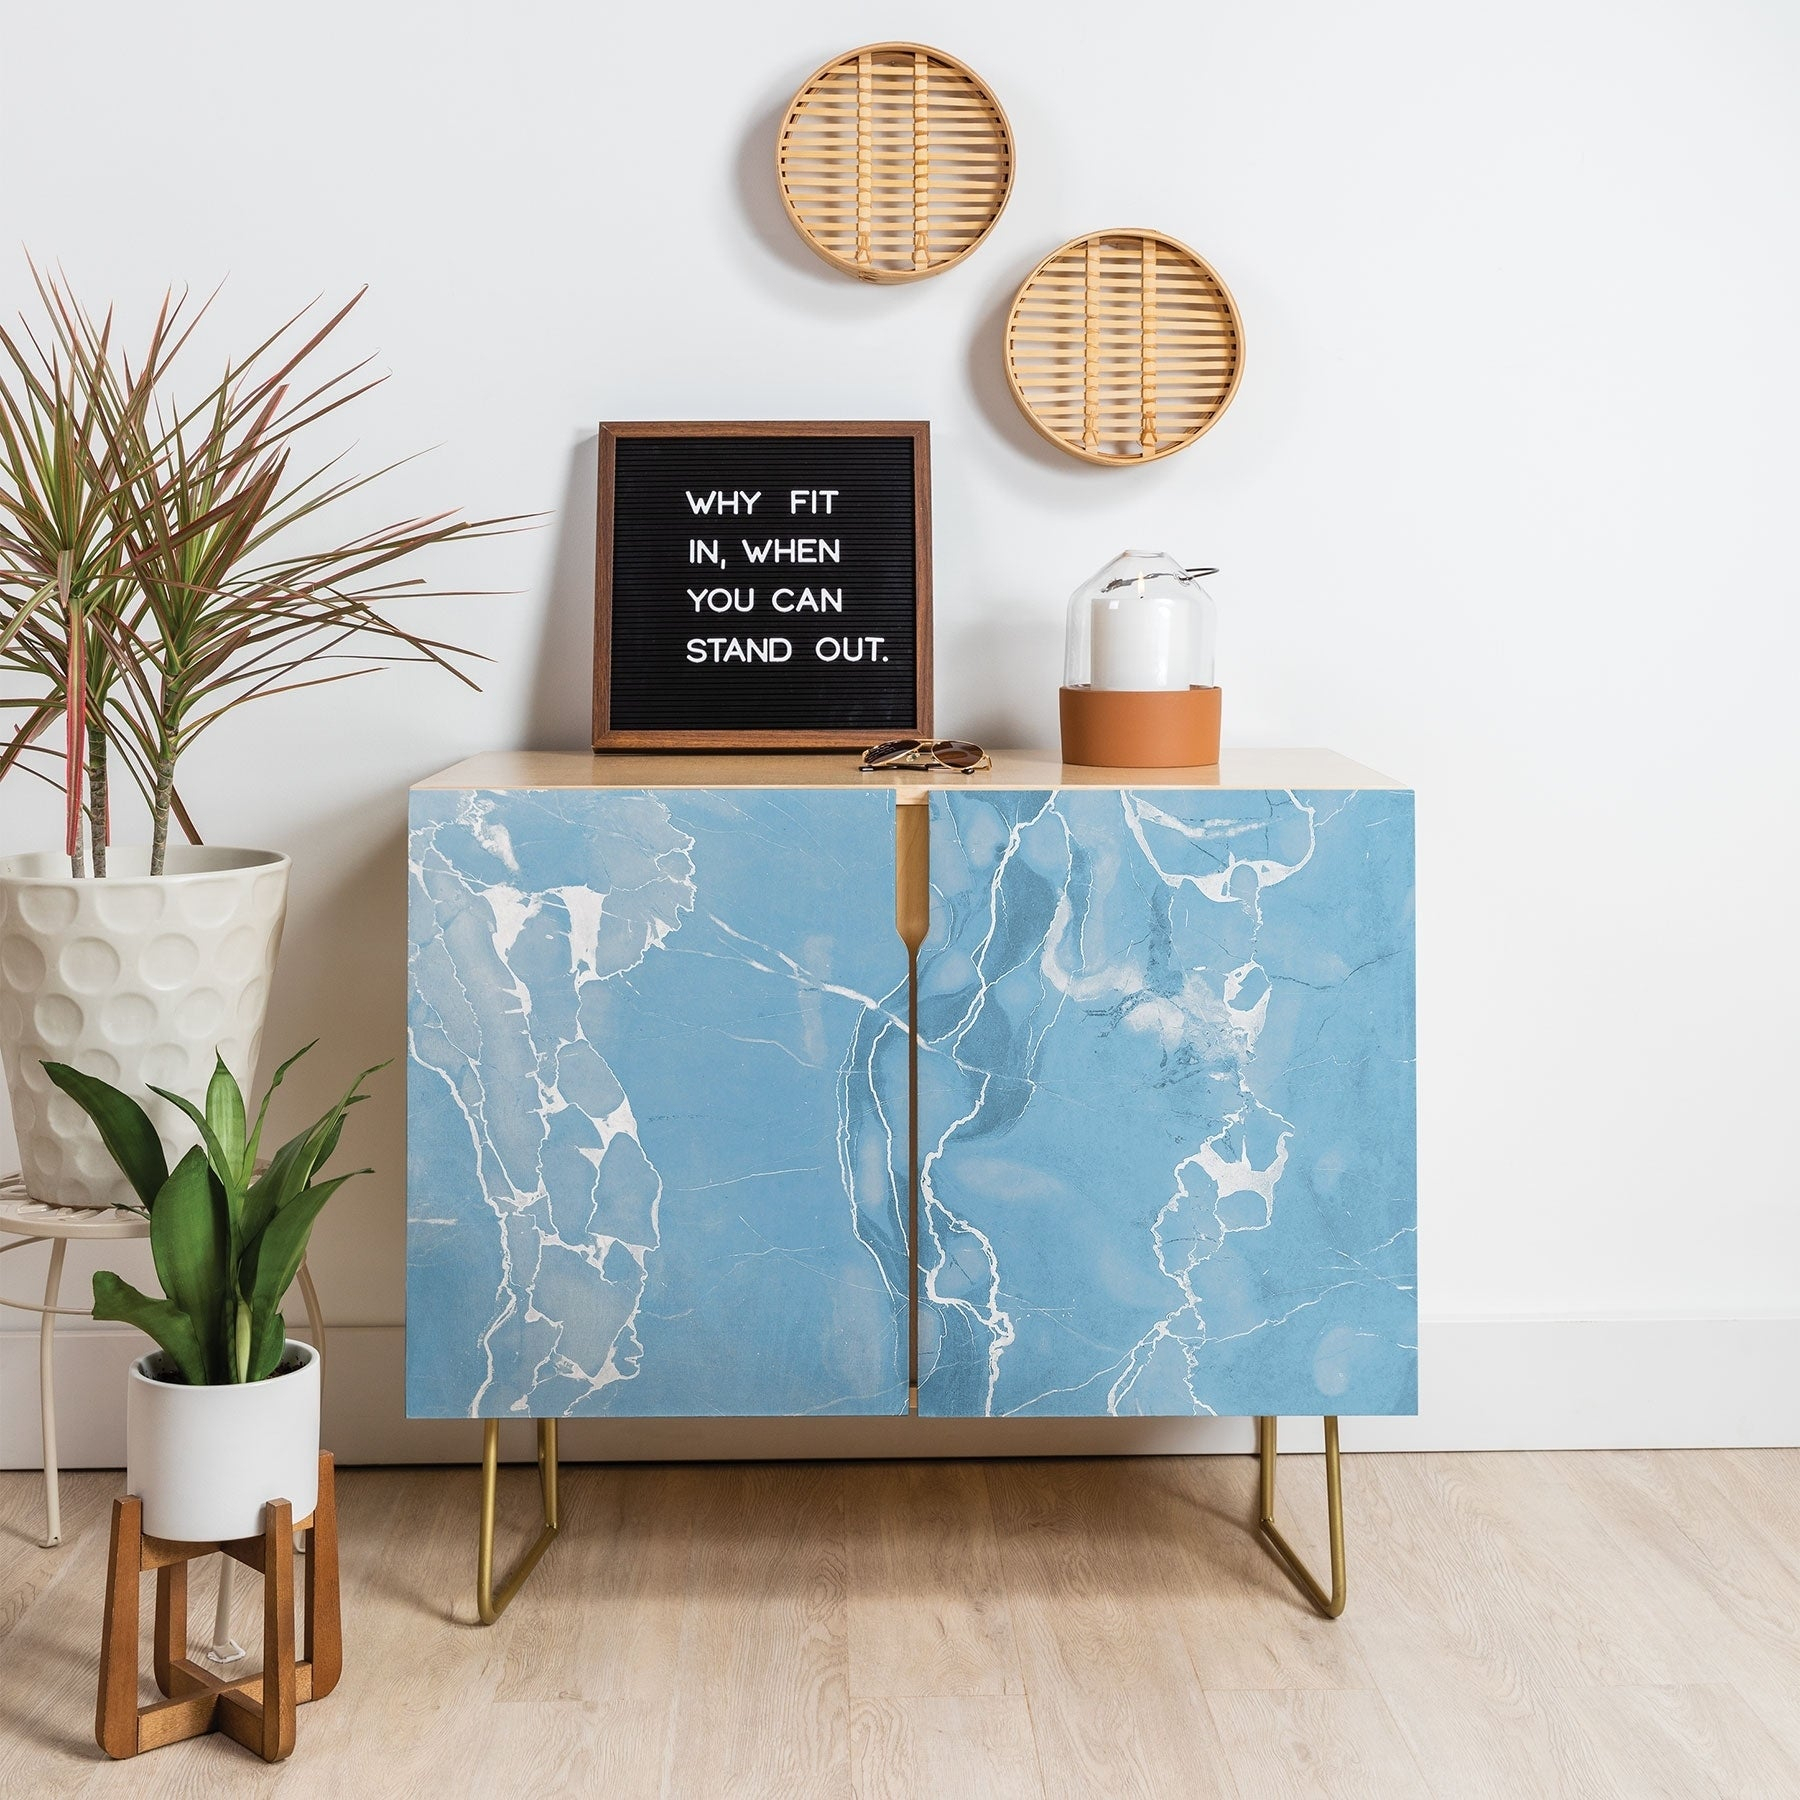 Deny Designs Blue Sky Marble Credenza (birch Or Walnut, 2 Leg Options) In Ocean Marble Credenzas (View 10 of 30)